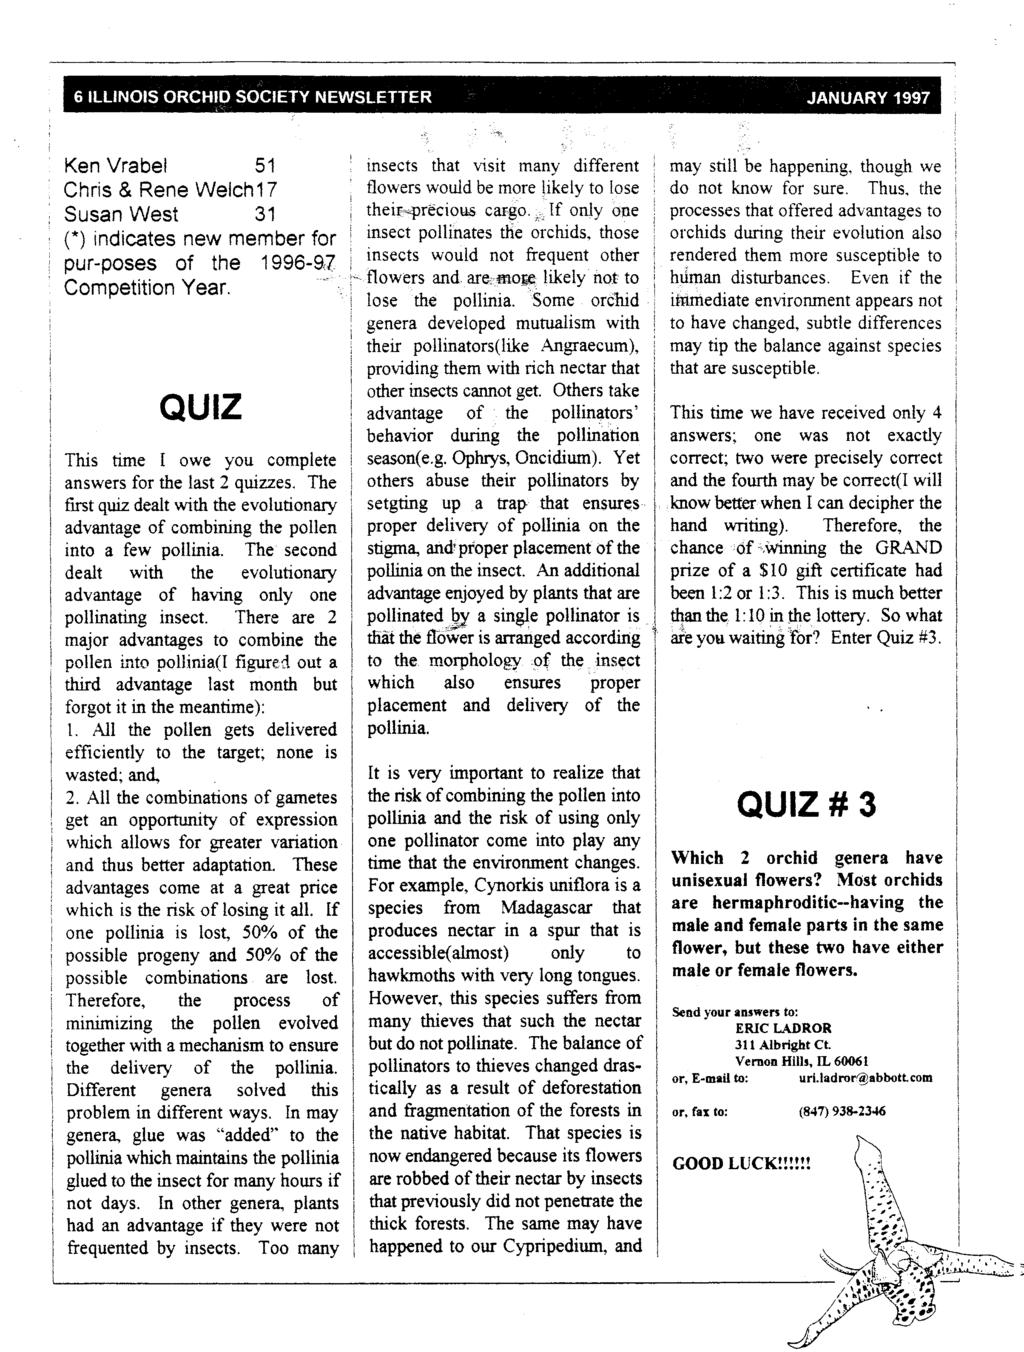 6 ILLINOIS ORCHID SOCIETY NEWSLETTER JANUARY 1997 ~'.- Ken Vrabel 51 Chris & Rene Welch 17 Susan West 31 (*) indicates new member for pur-poses of the 1996-9:7 Competition Year.